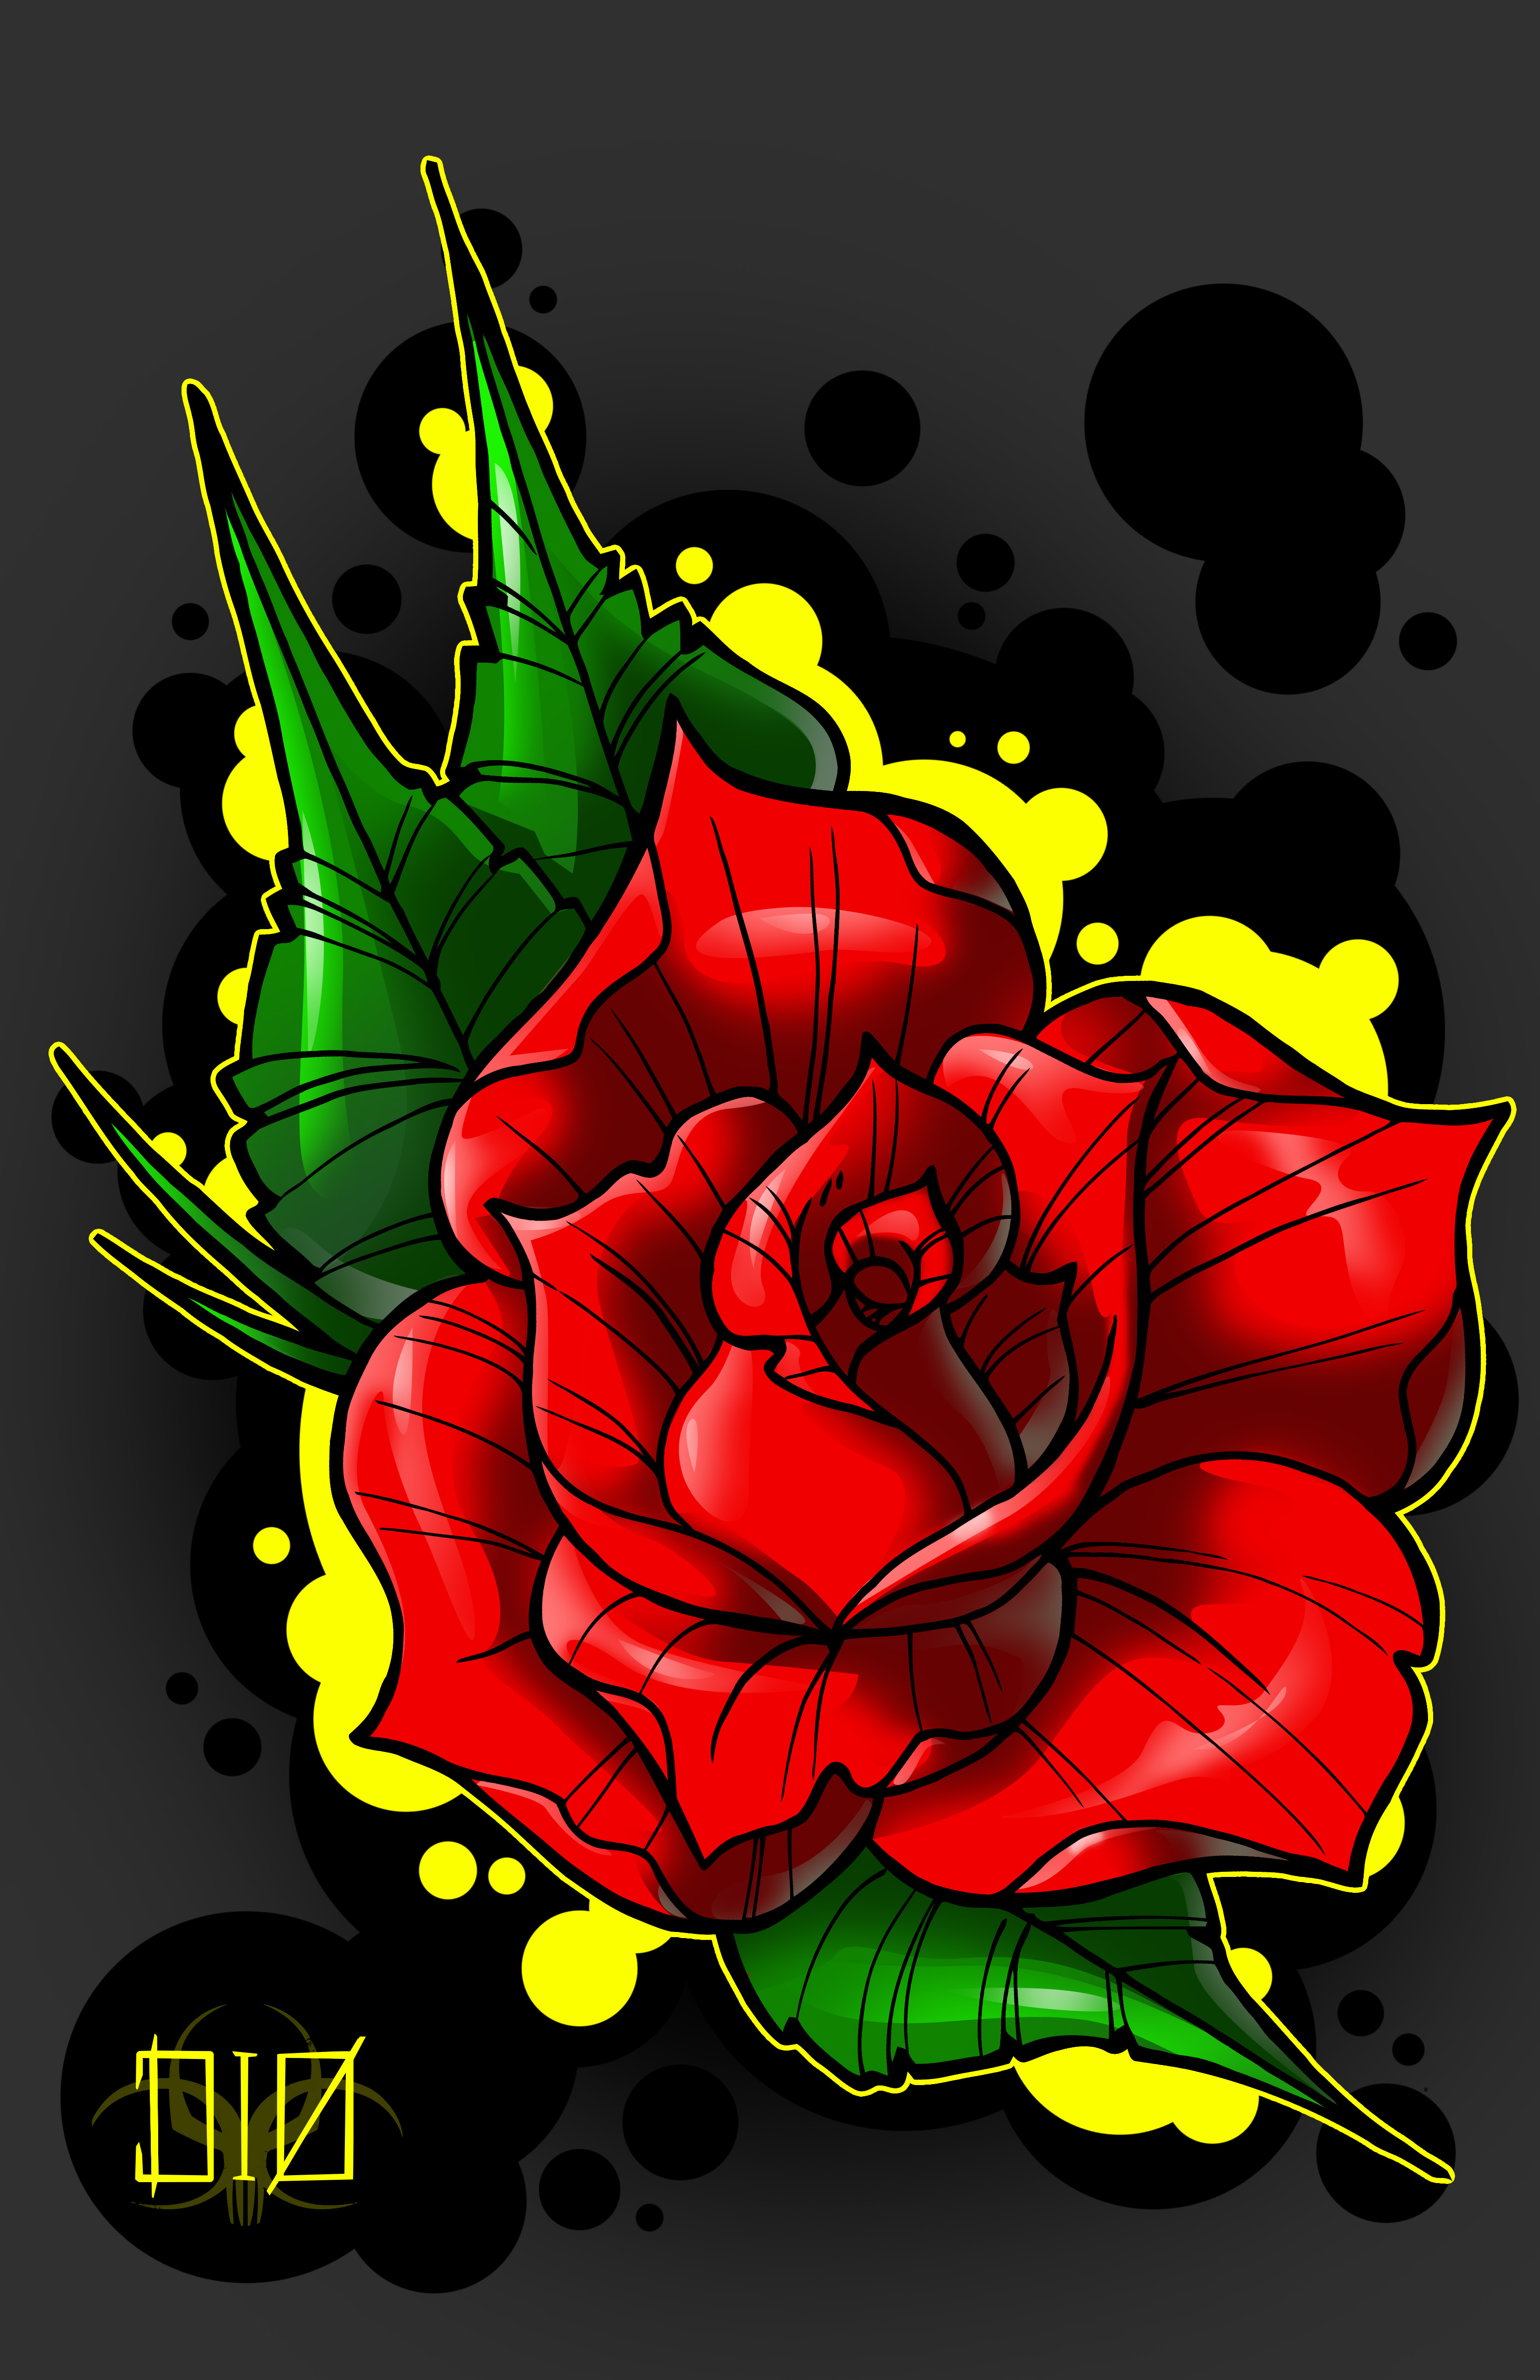 NeoTraditional Rose